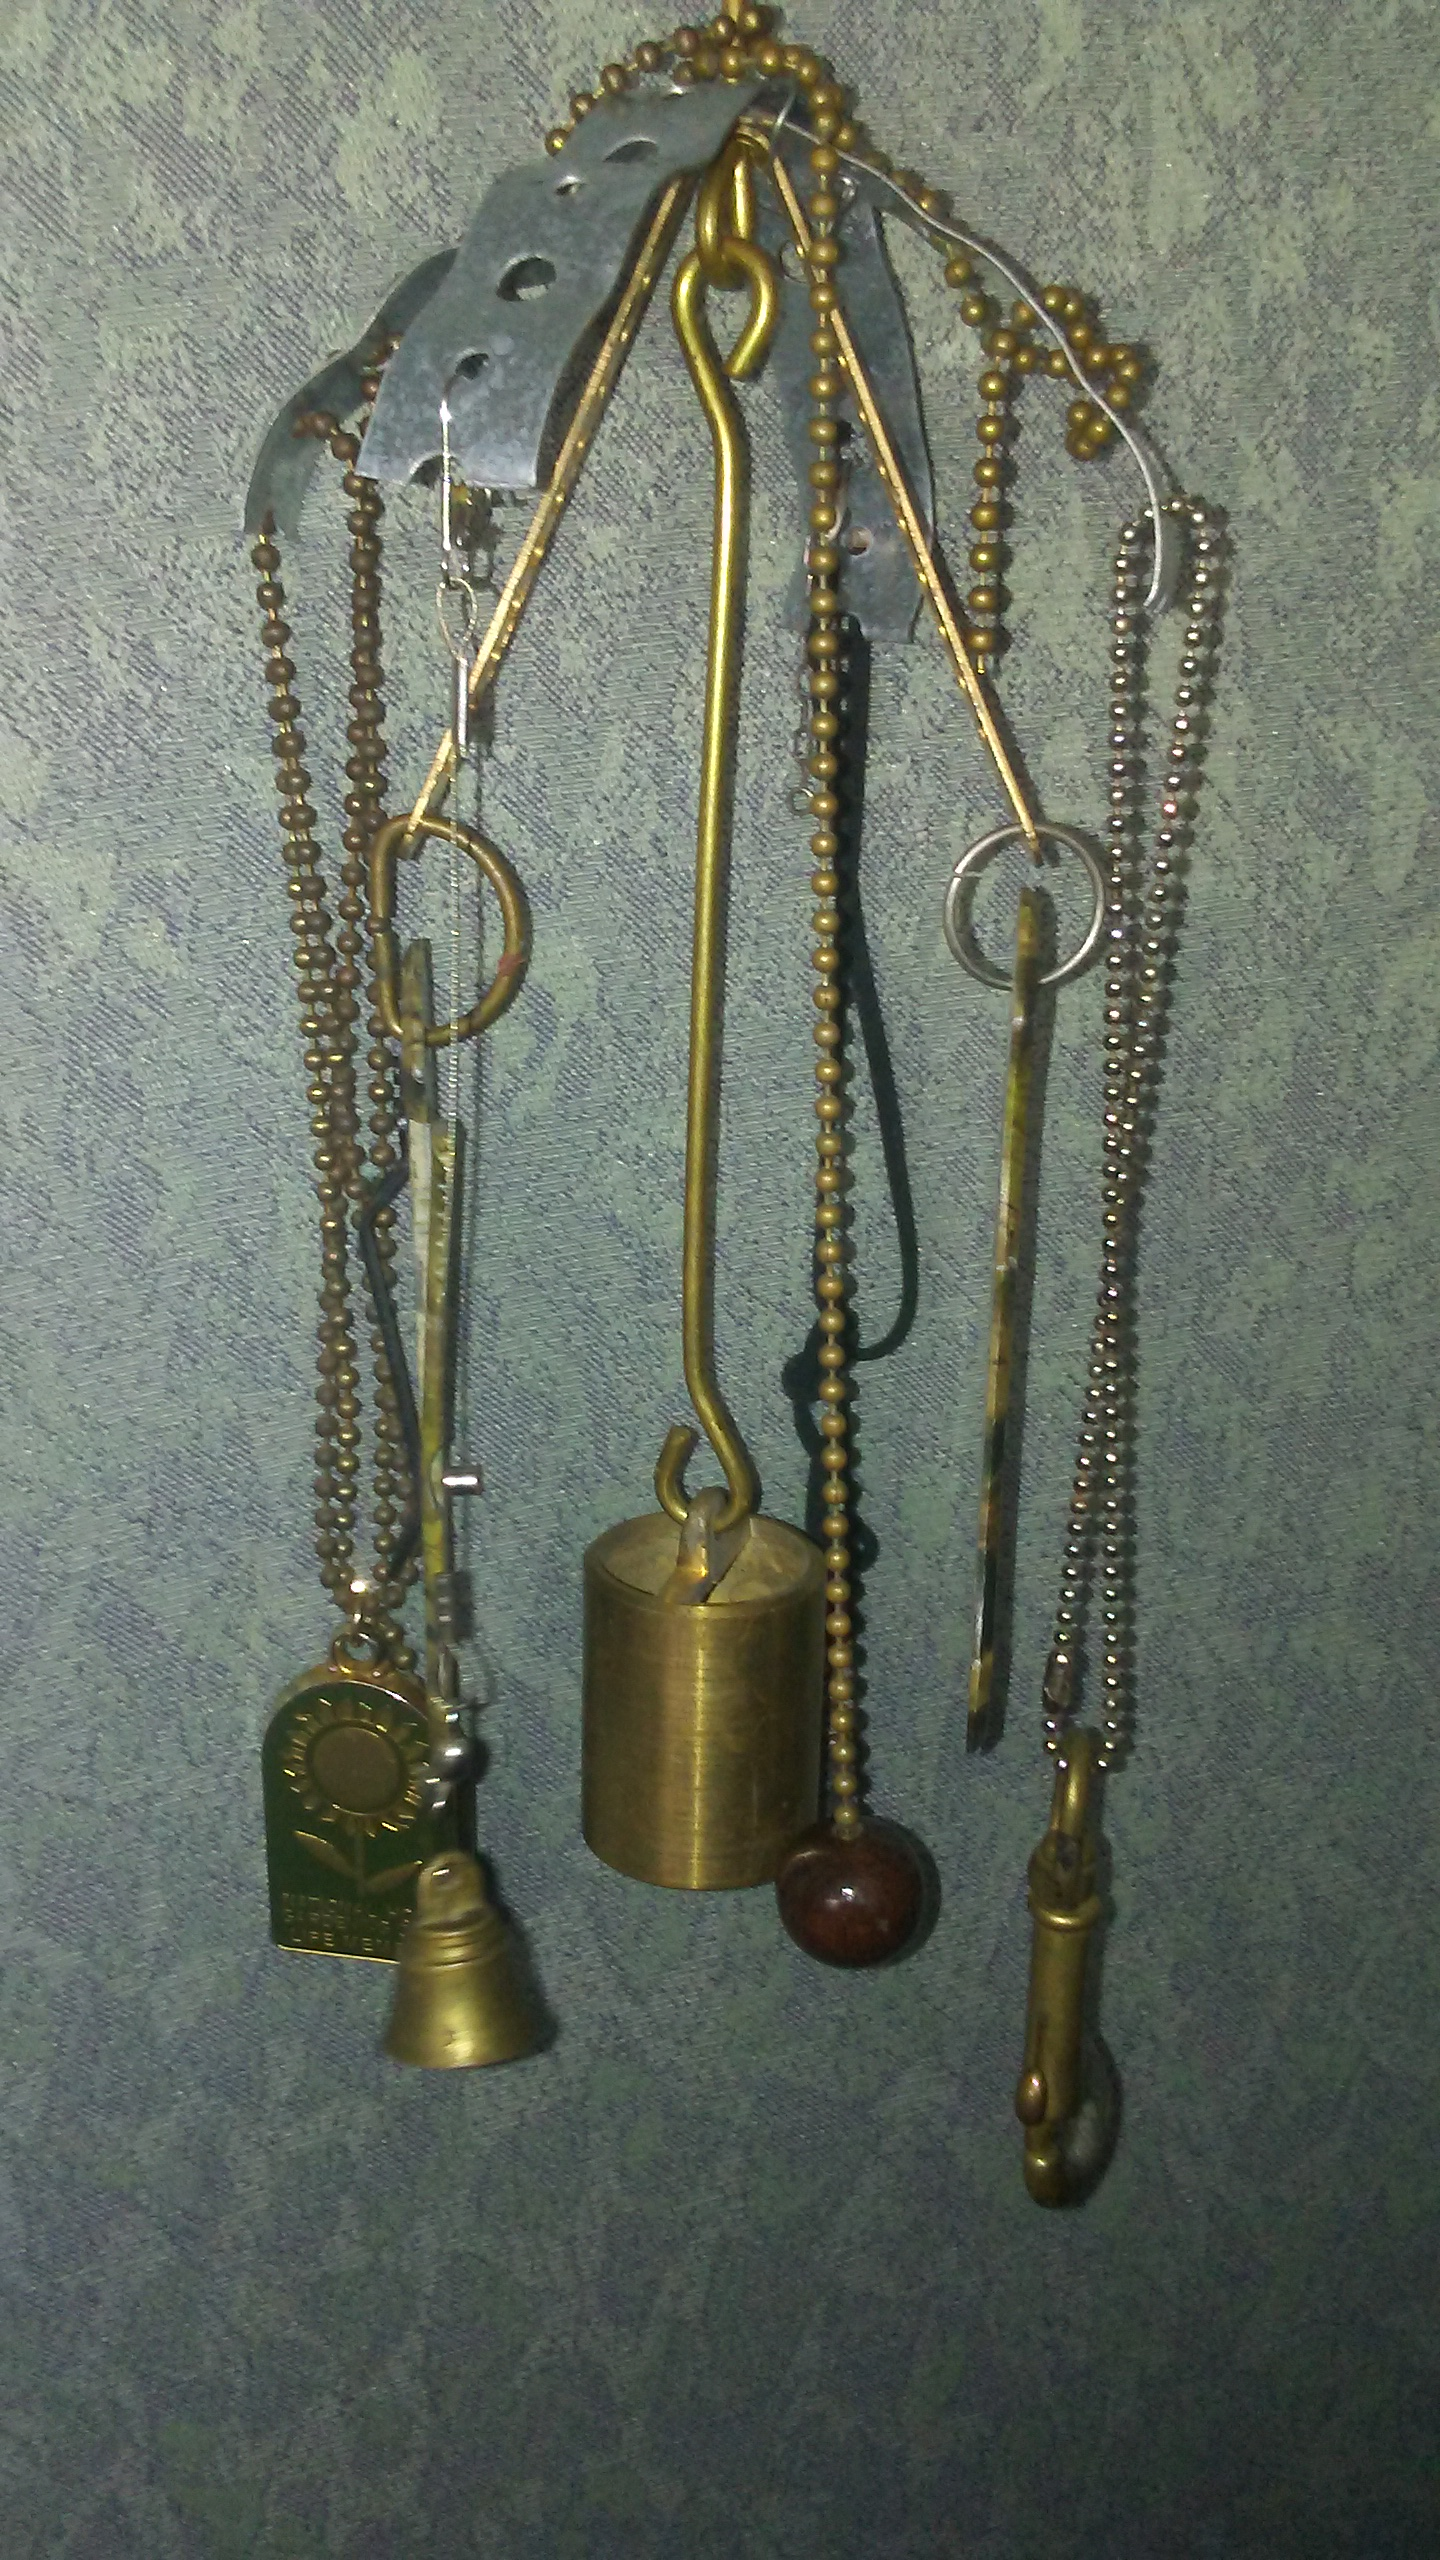 Metal Wind Chime Made of Found Objects Including Brass weight, Clamps, Lamp chain, Green and Brass Key fob, Brass Bell, Green Camo Pocket Knife Parts.